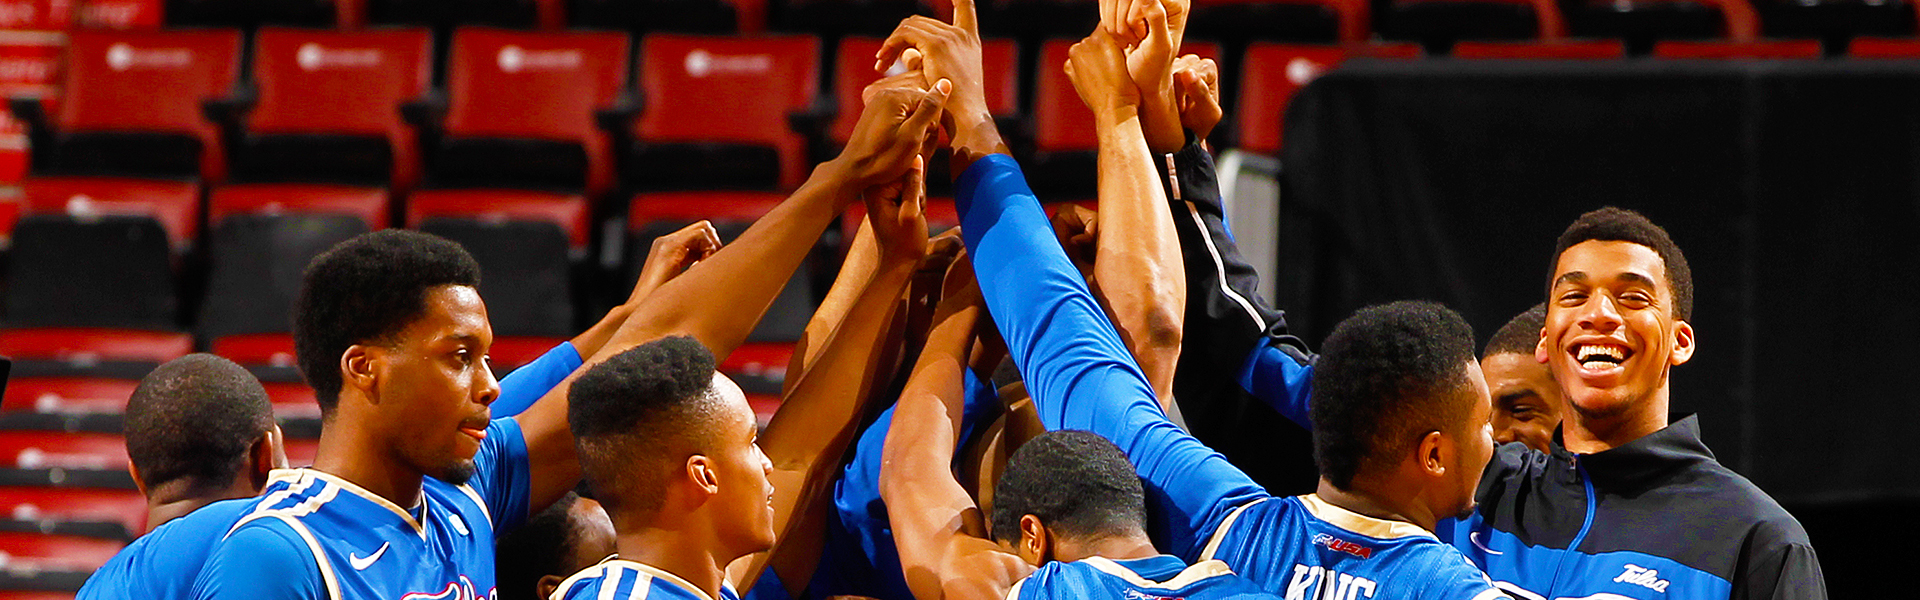 Website-Full-Width-Image---1920x600_Basketball_Groups